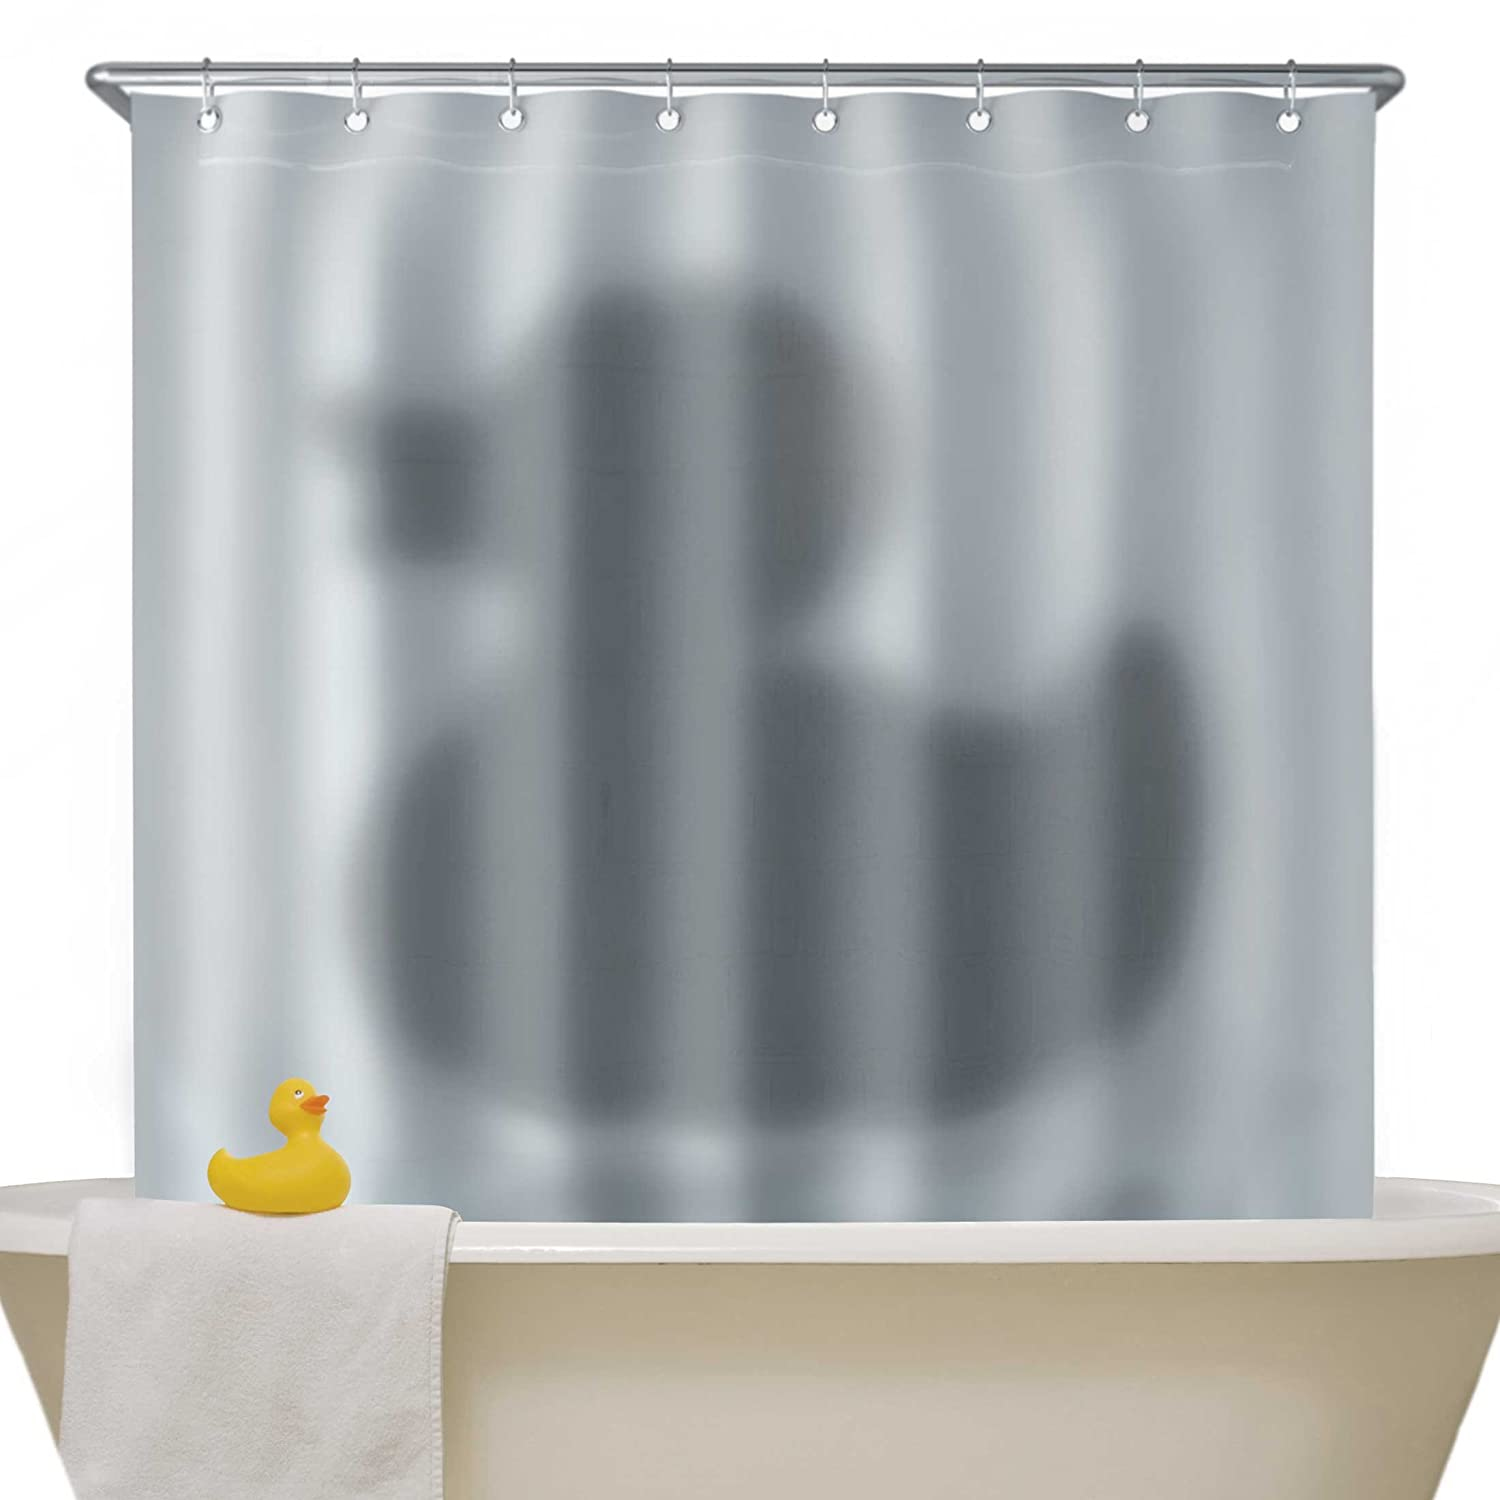 Amazon.com: Mustard NG5309 Shower Curtain, Shadow of The Duck ...